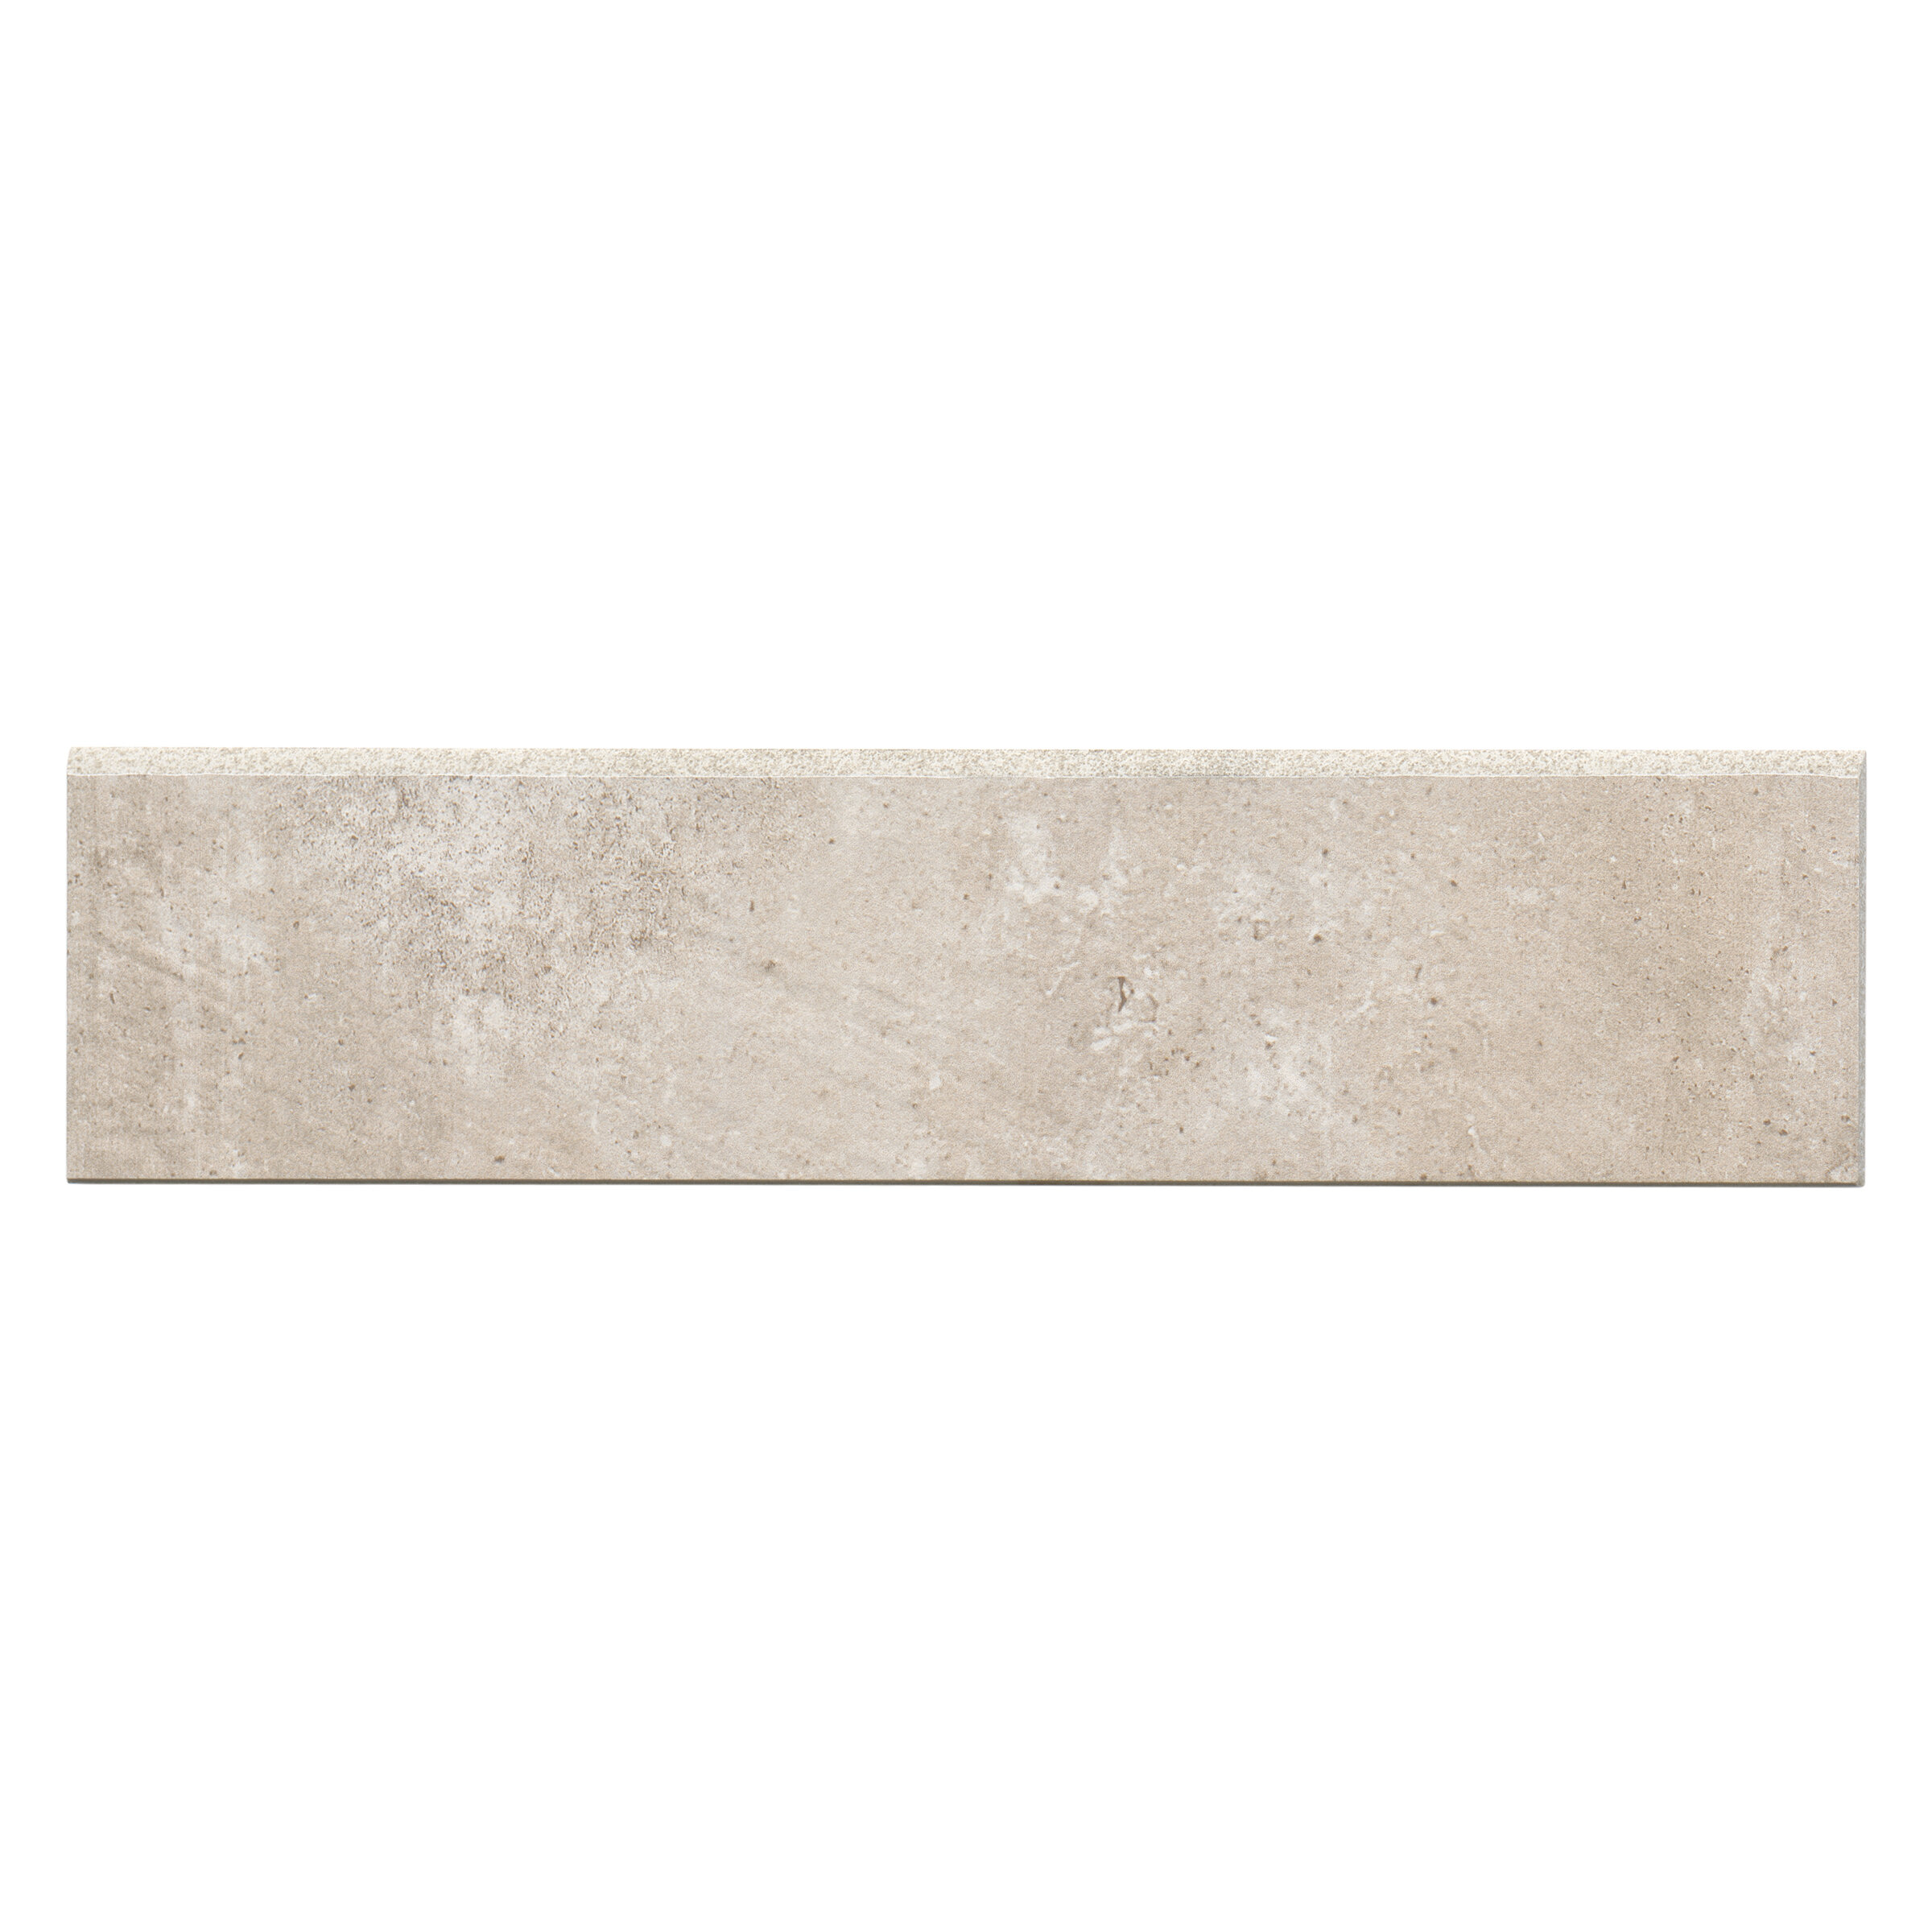 Bedrosians 12 X 3 Porcelain Bullnose Tile Trim In Tan Wayfair